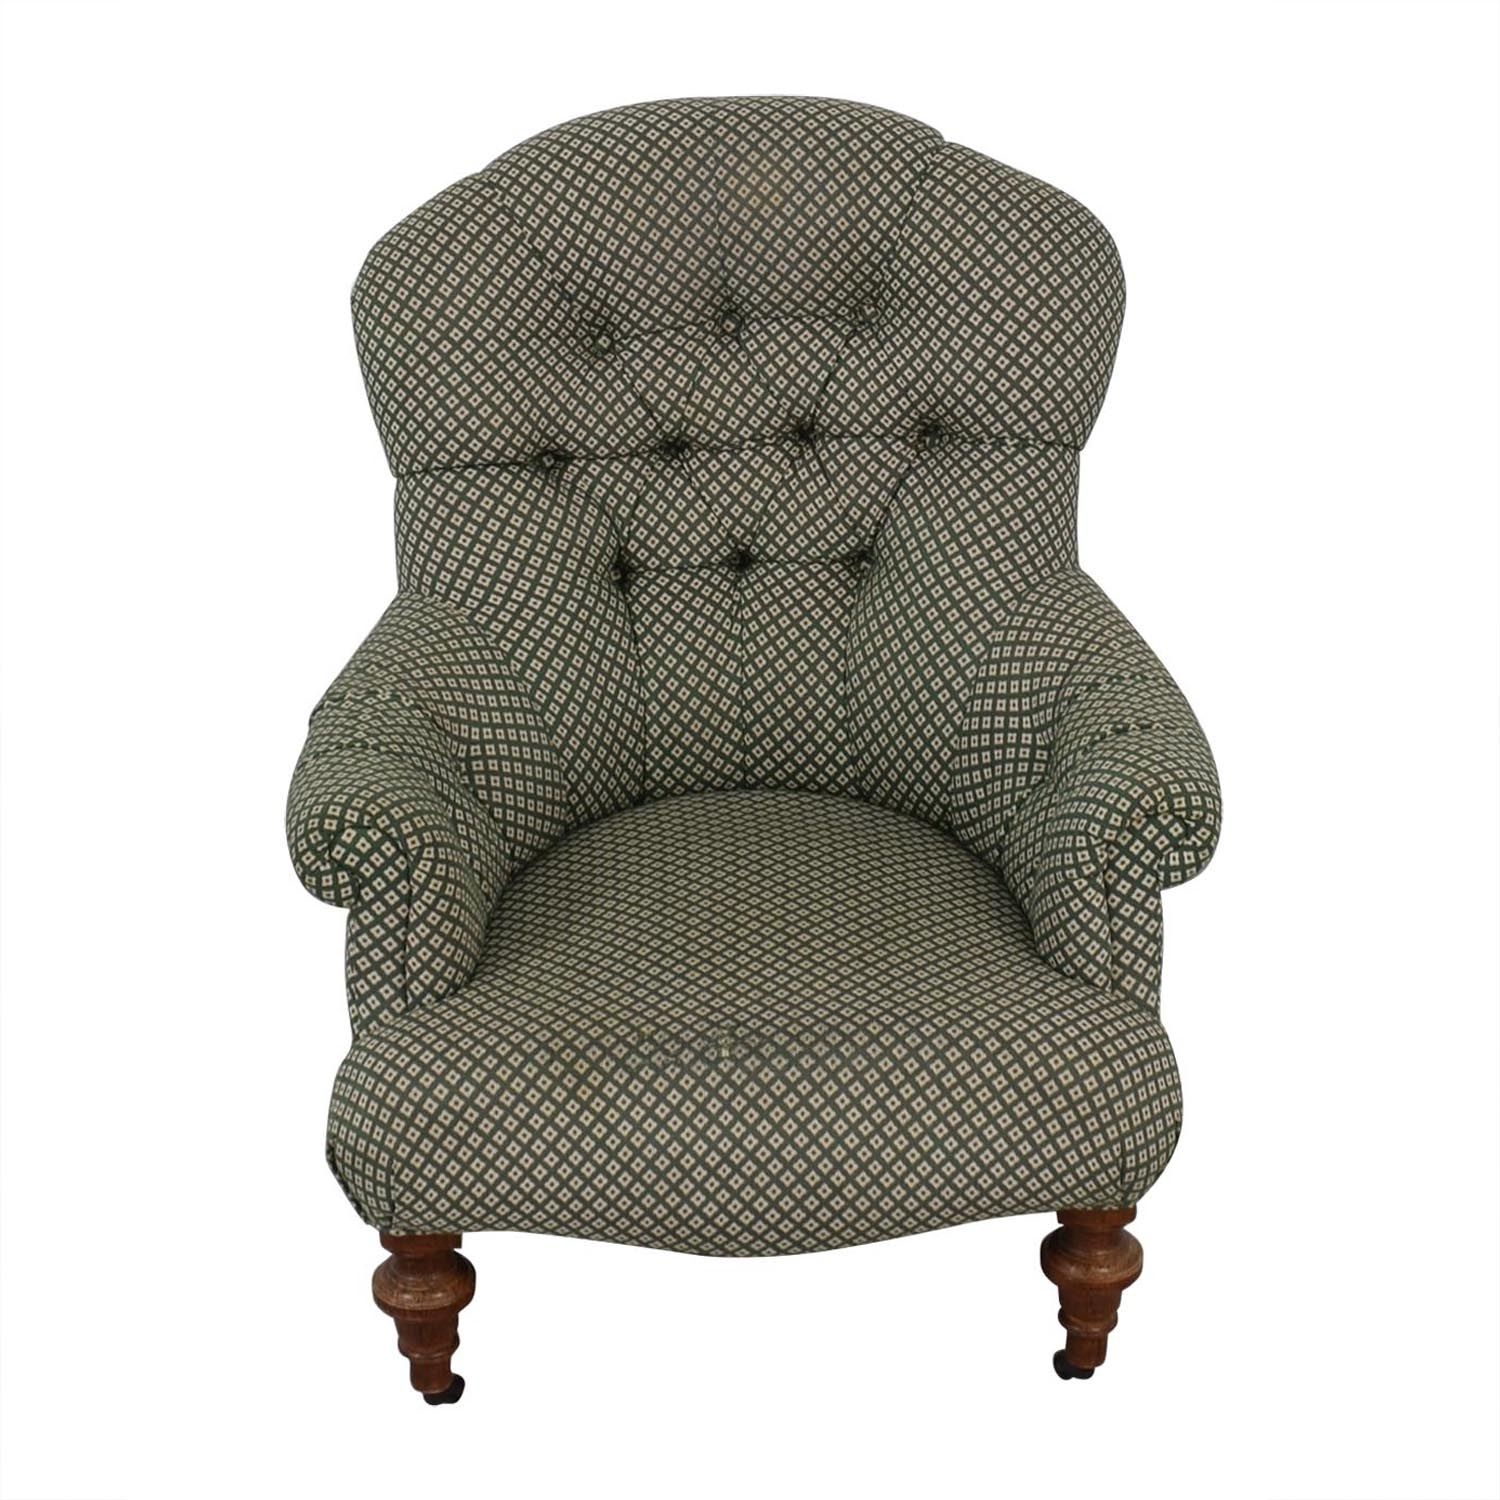 Phenomenal 70 Off Green And White Tufted High Back Armchair Chairs Bralicious Painted Fabric Chair Ideas Braliciousco